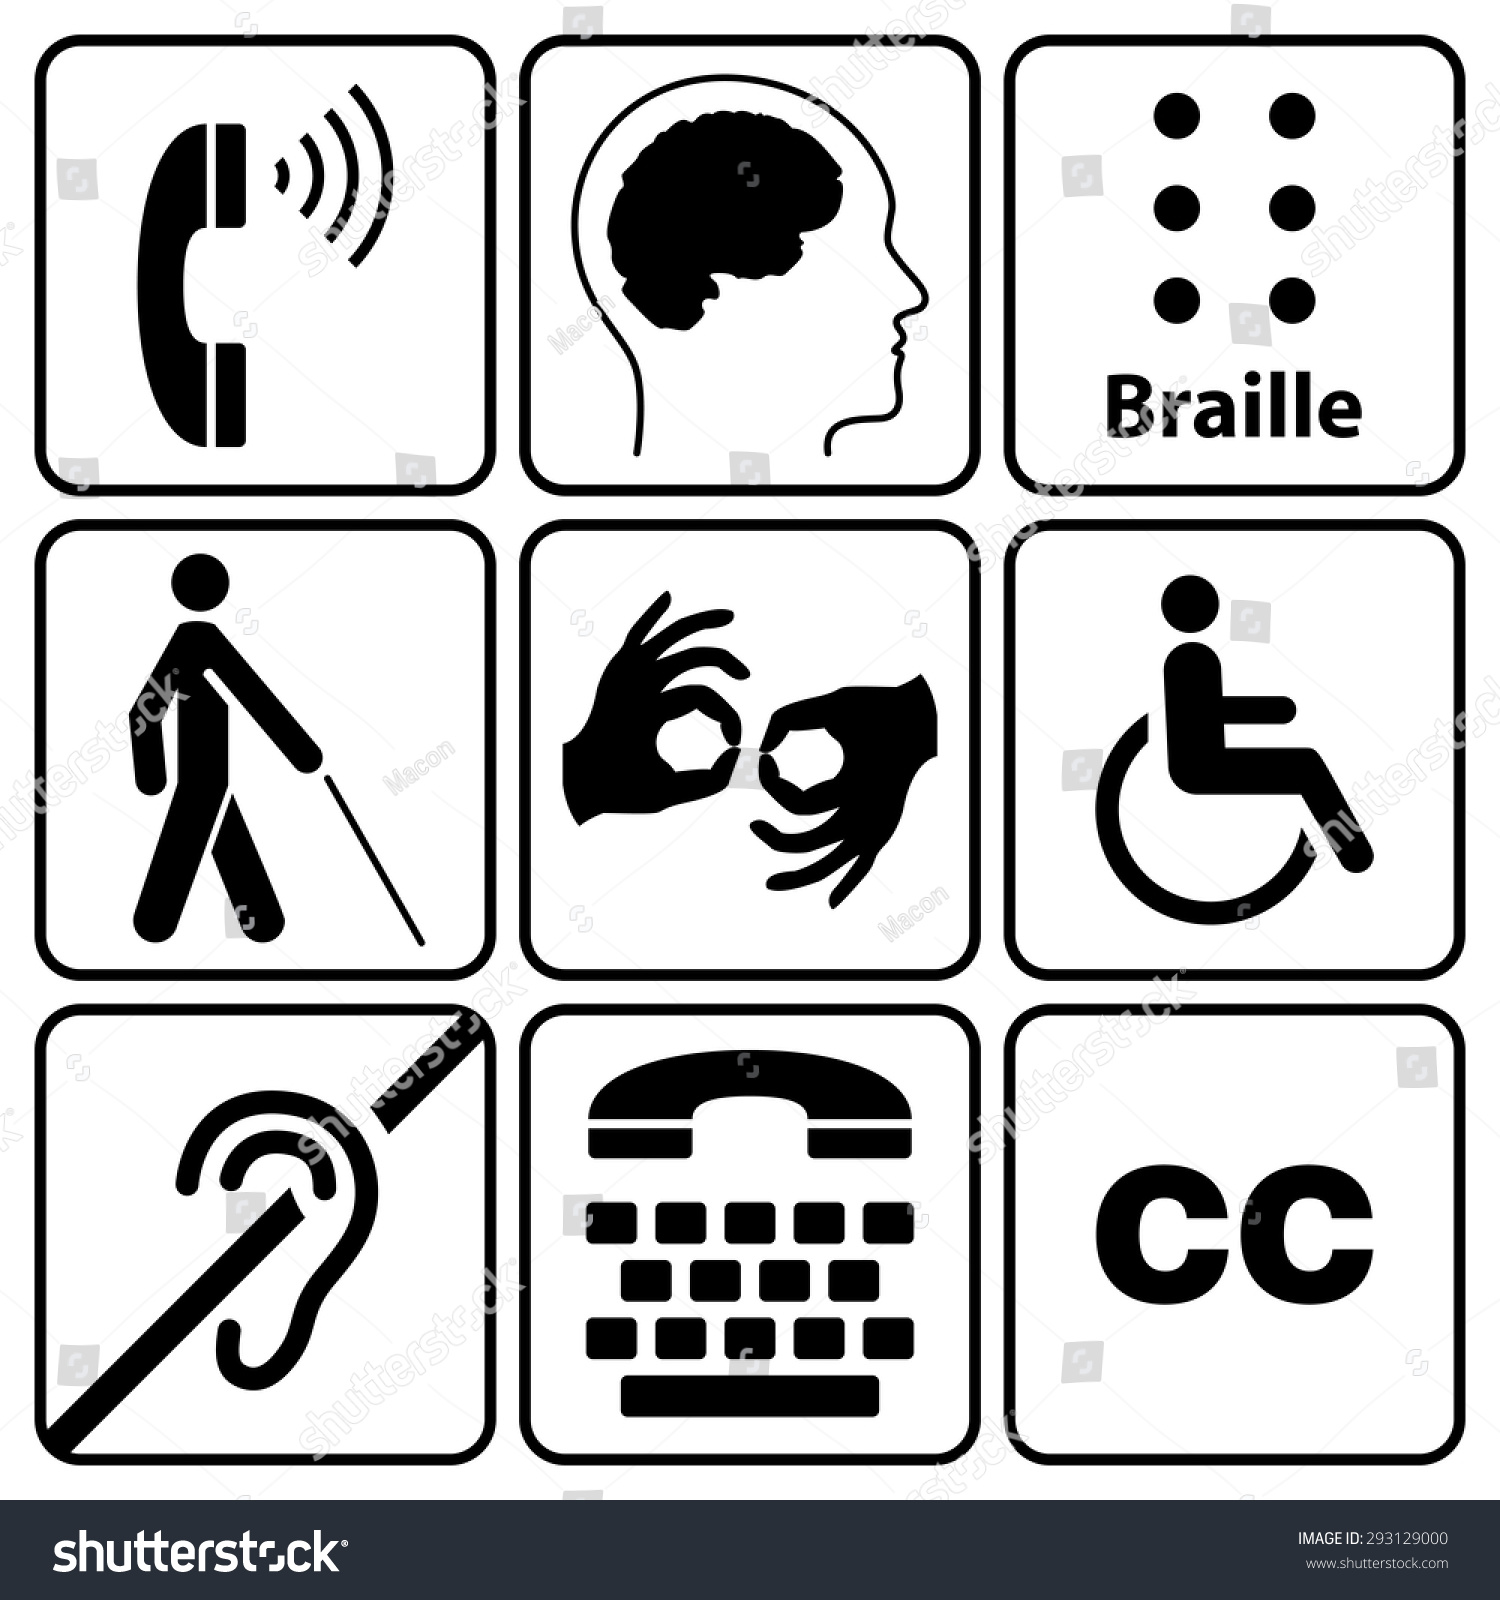 Royalty Free Black Disability Symbols And Signs 293129000 Stock